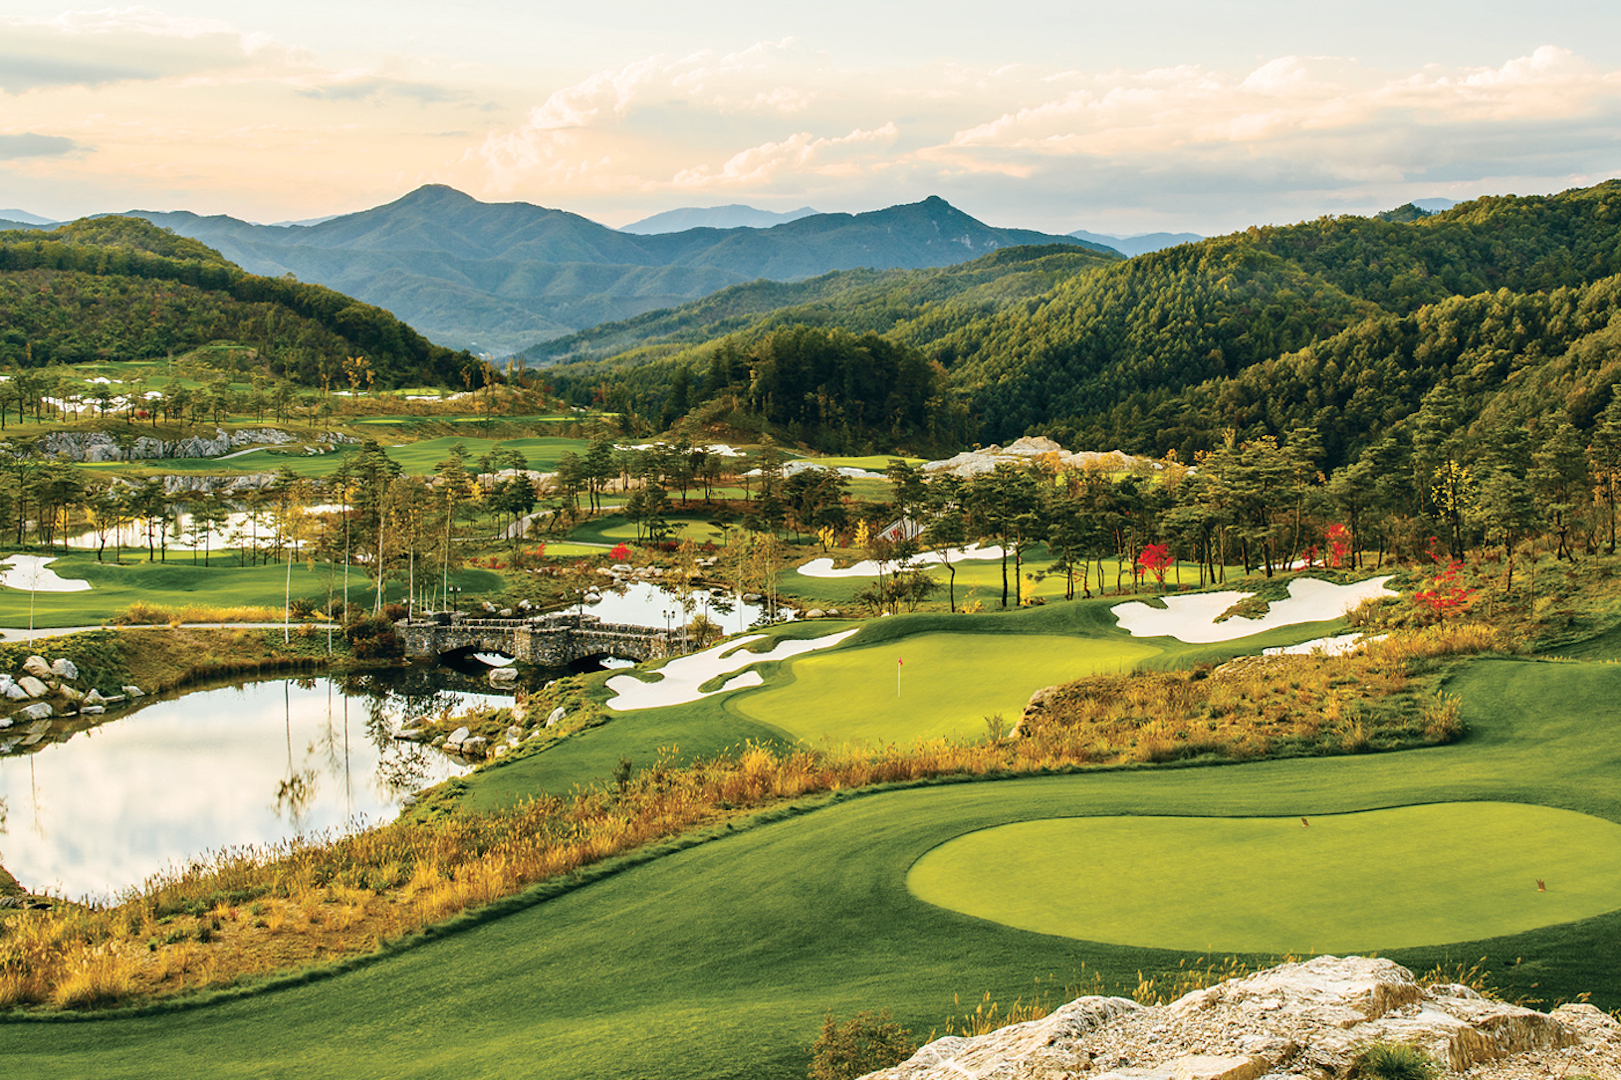 South Korean golf course